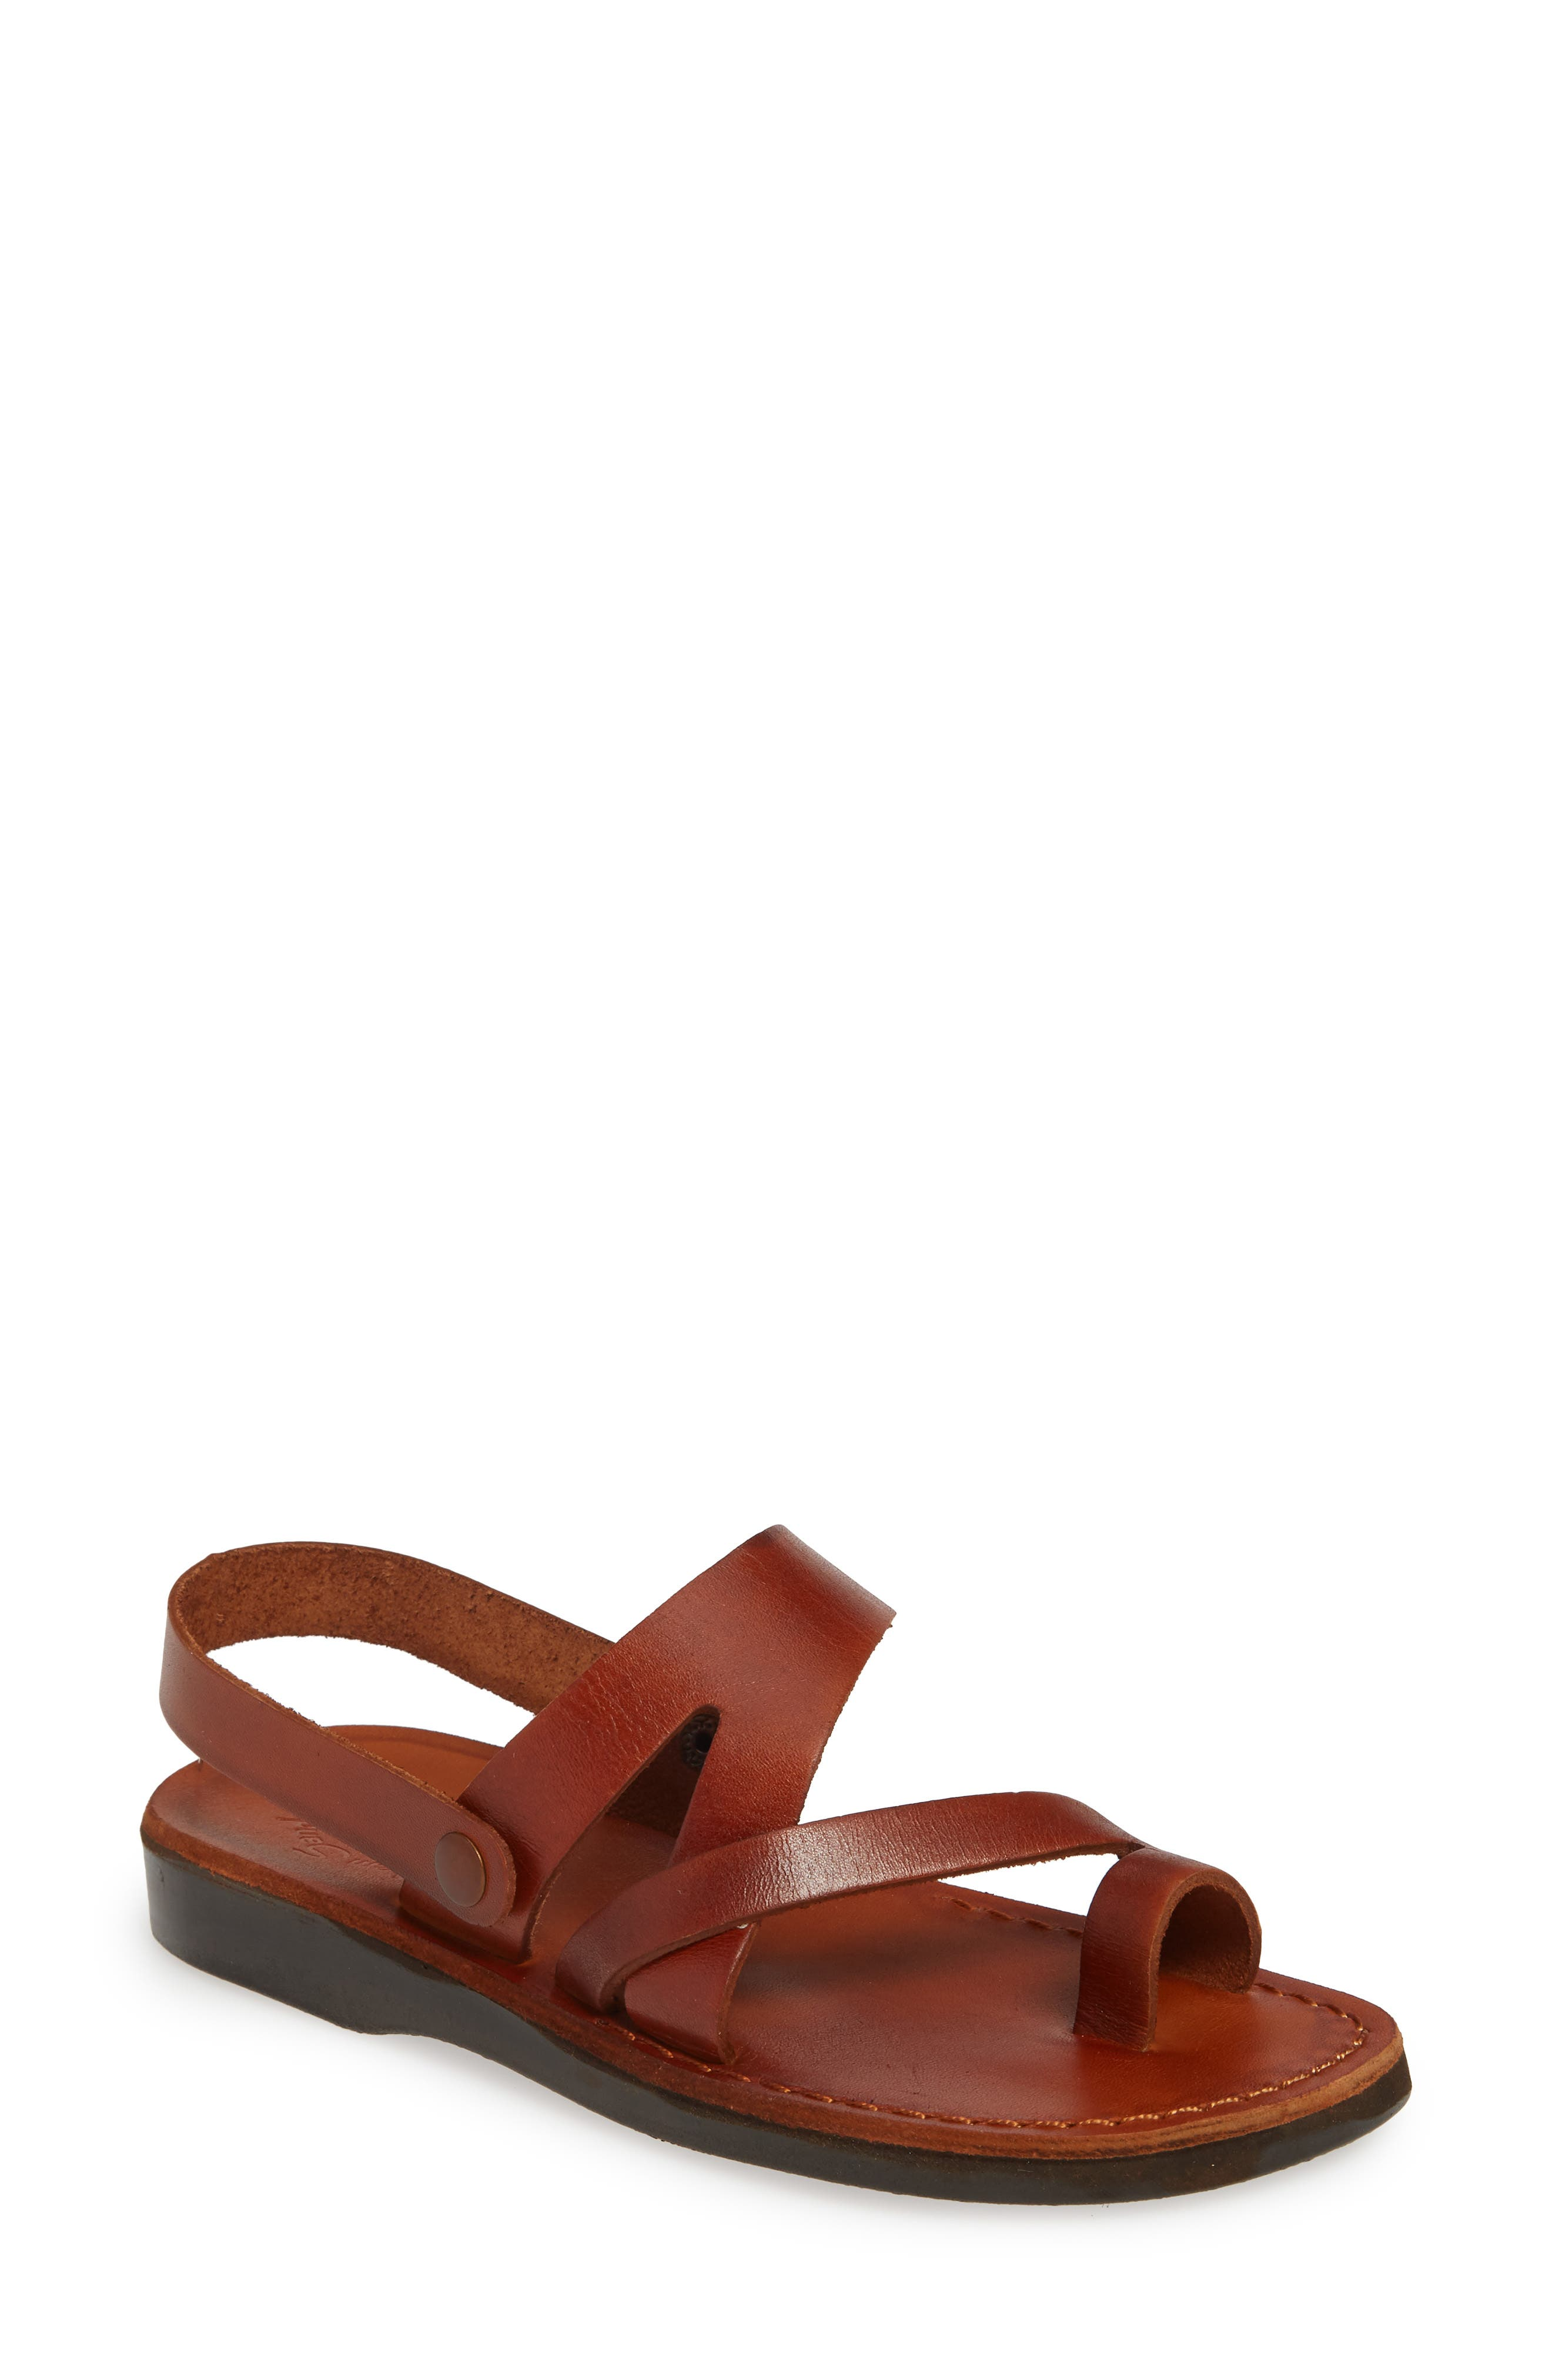 Designed as a tribute to 2,000-year-old shoes found at archaeological digs in the Middle East, these vegetable-tanned leather sandals are handmade in Israel by skilled craftsman. The style includes a decorative slingback strap that\\\'s just for looks-it\\\'s meant to be worn low-slung against the base of your heel Style Name: Jerusalem Sandals Benjamin Sandal (Women). Style Number: 5790593. Available in stores.